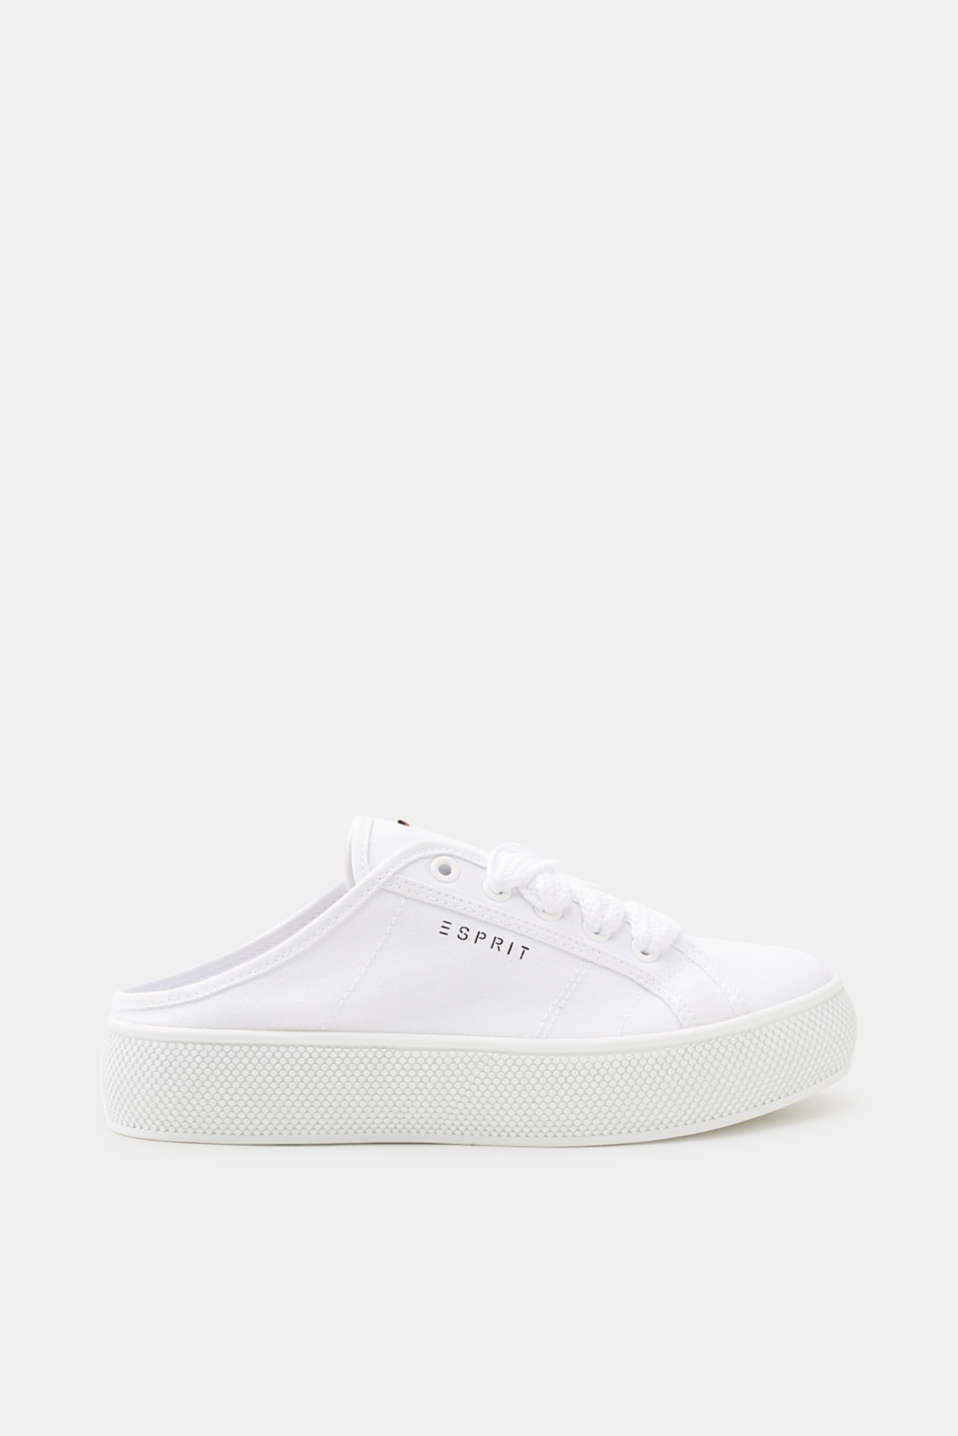 Simple to slide into! The lightweight canvas fabric makes these slip-on trainers something special.